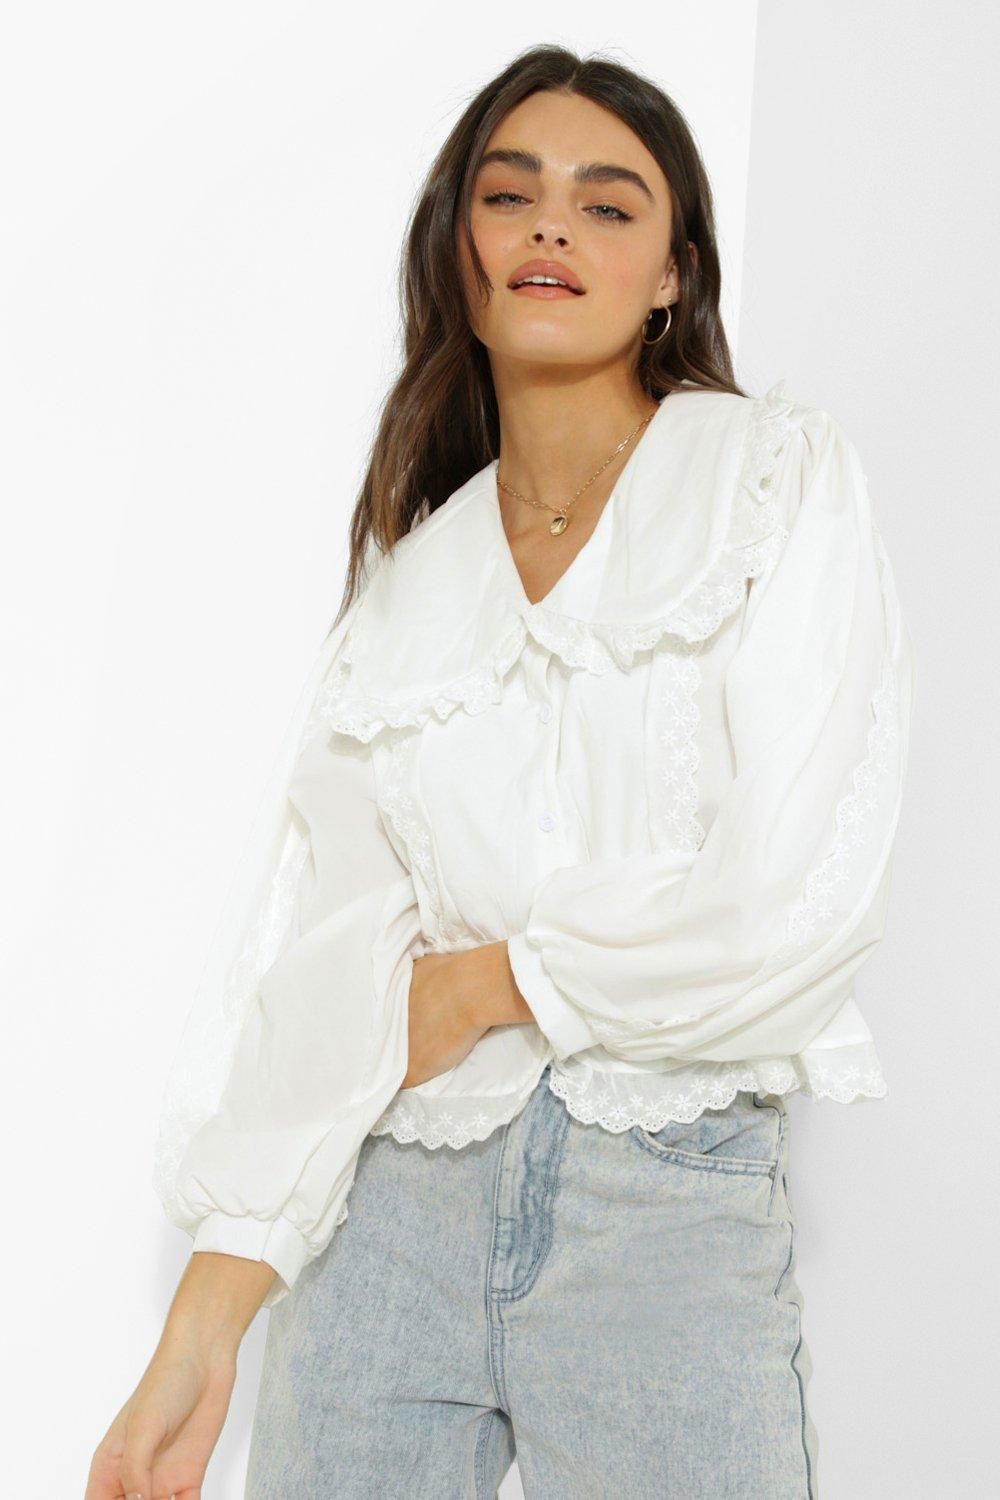 1980s Clothing, Fashion | 80s Style Clothes Womens Ruffle Detail Lace Trim Blouse - White - M $20.00 AT vintagedancer.com